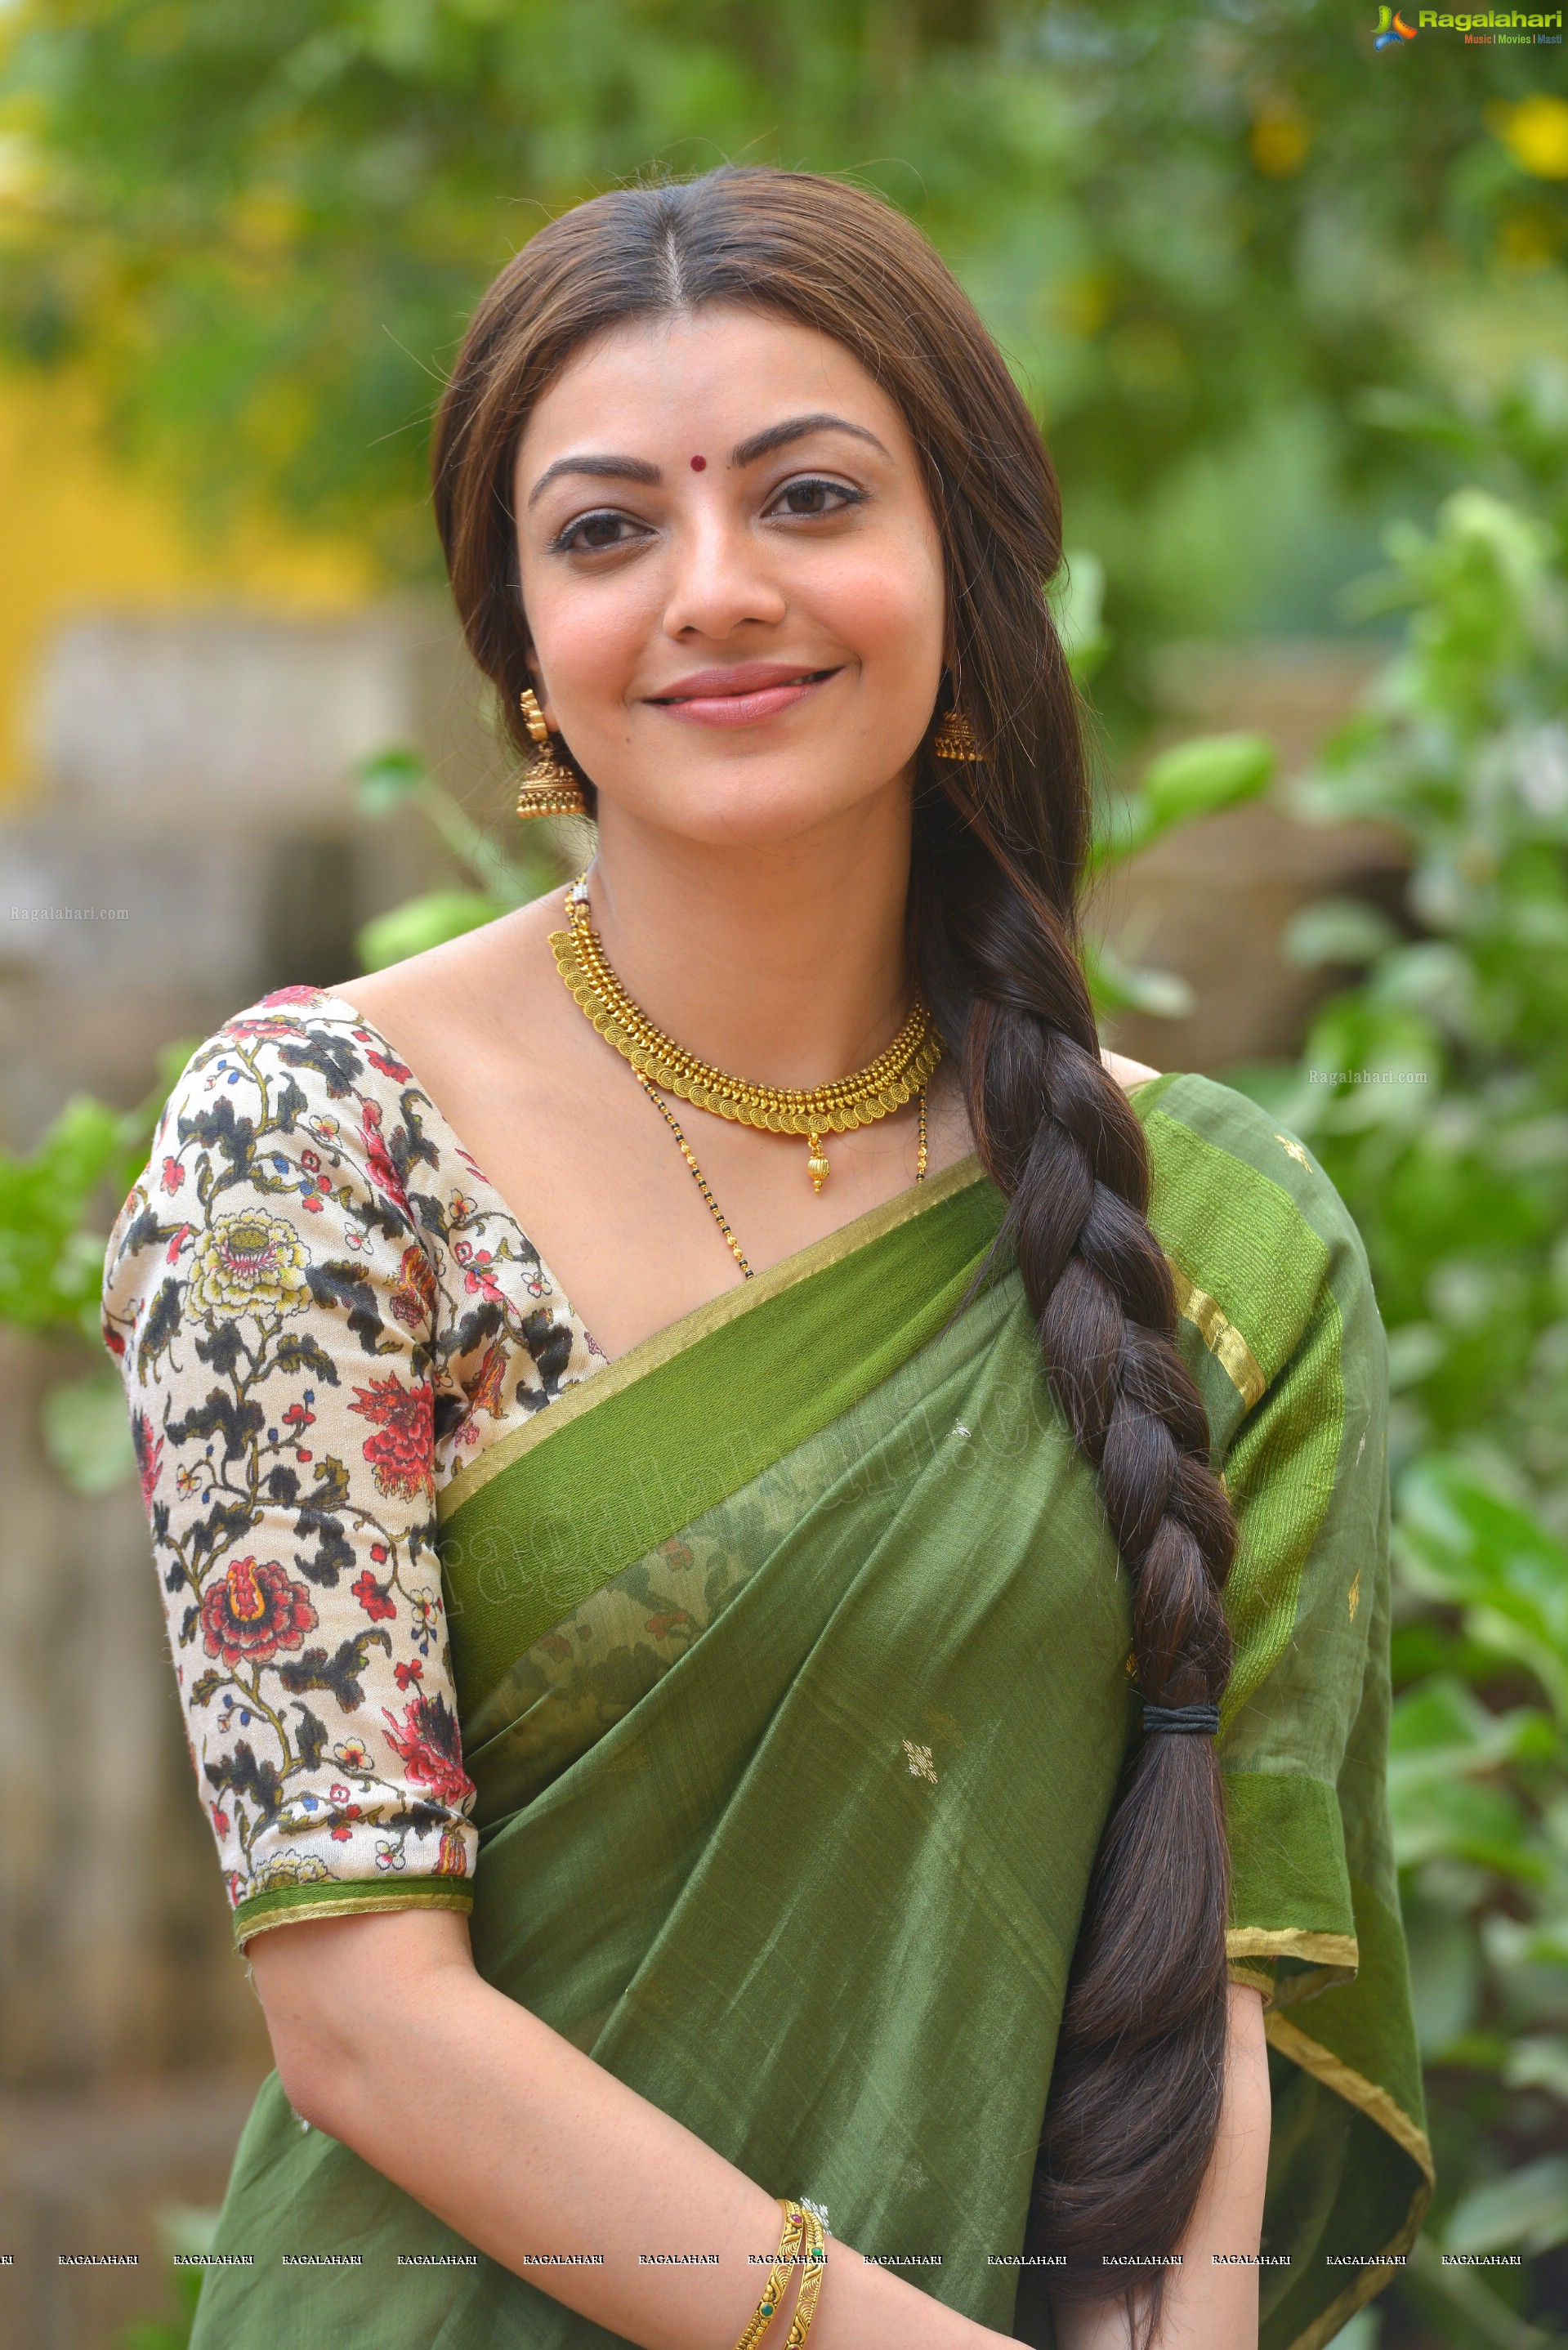 kajal aggarwal (high definition) image 42 | tollywood actress images